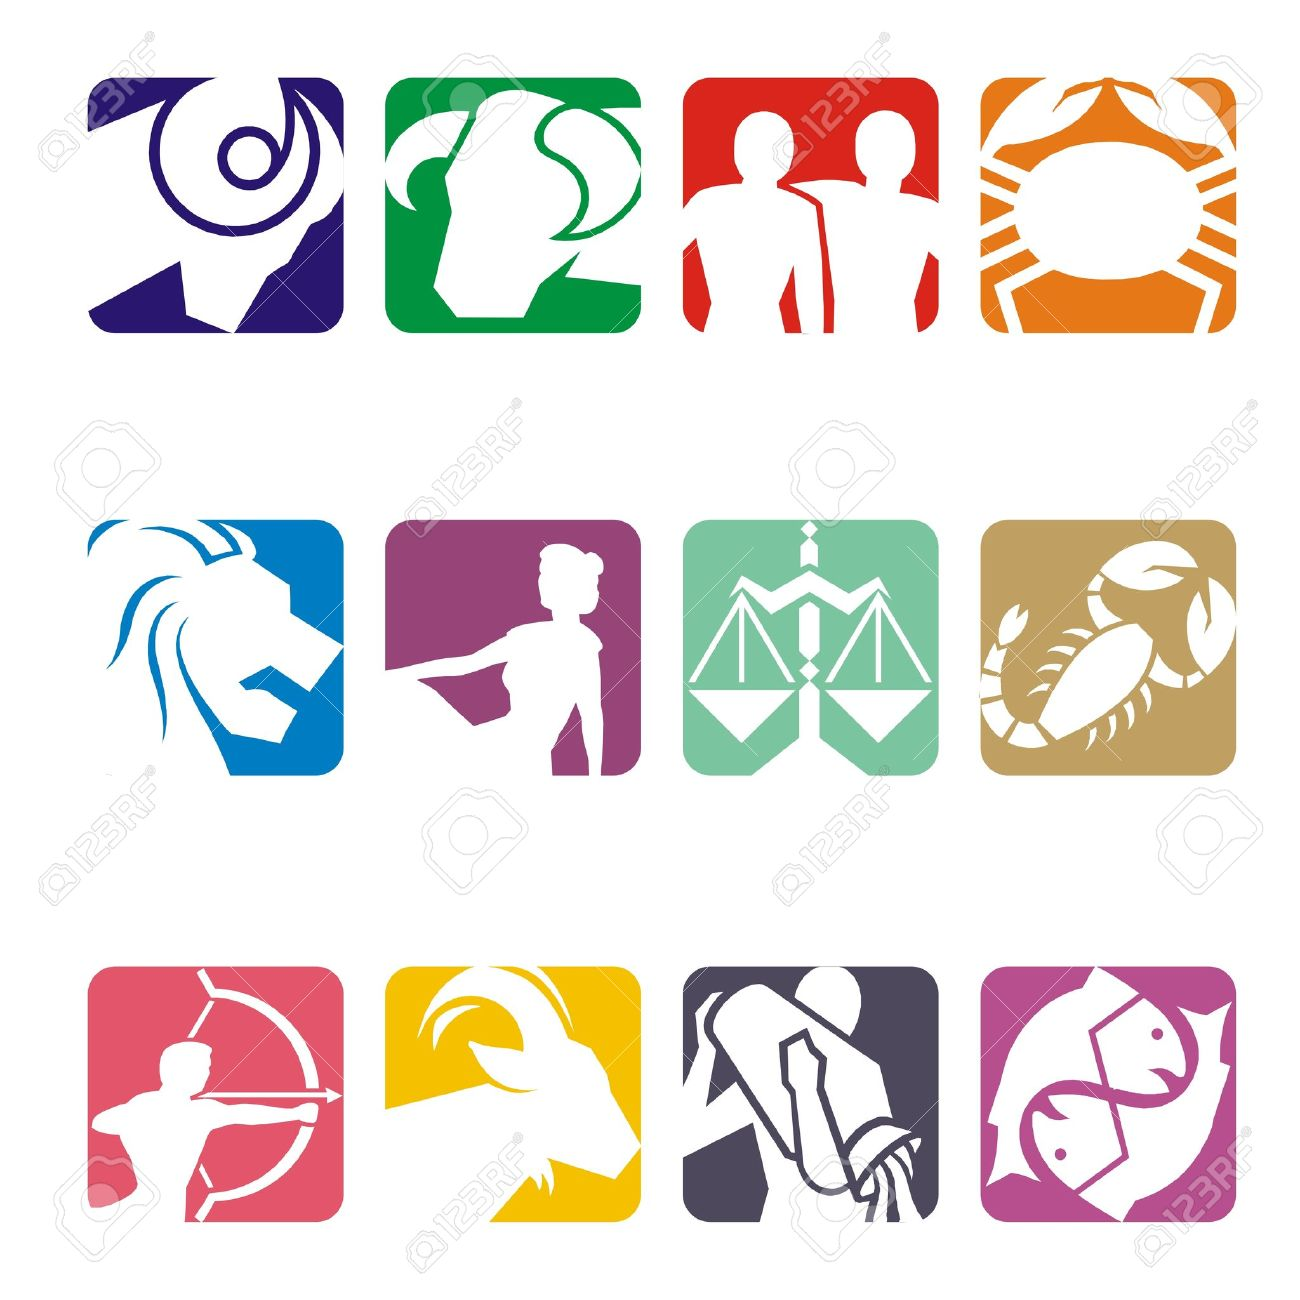 Finding Ways To Work On Your Personal Growth 11737419-Horoscope-symbols-in-2D-graphic-astrology-zodiac-illustration-Stock-Illustration